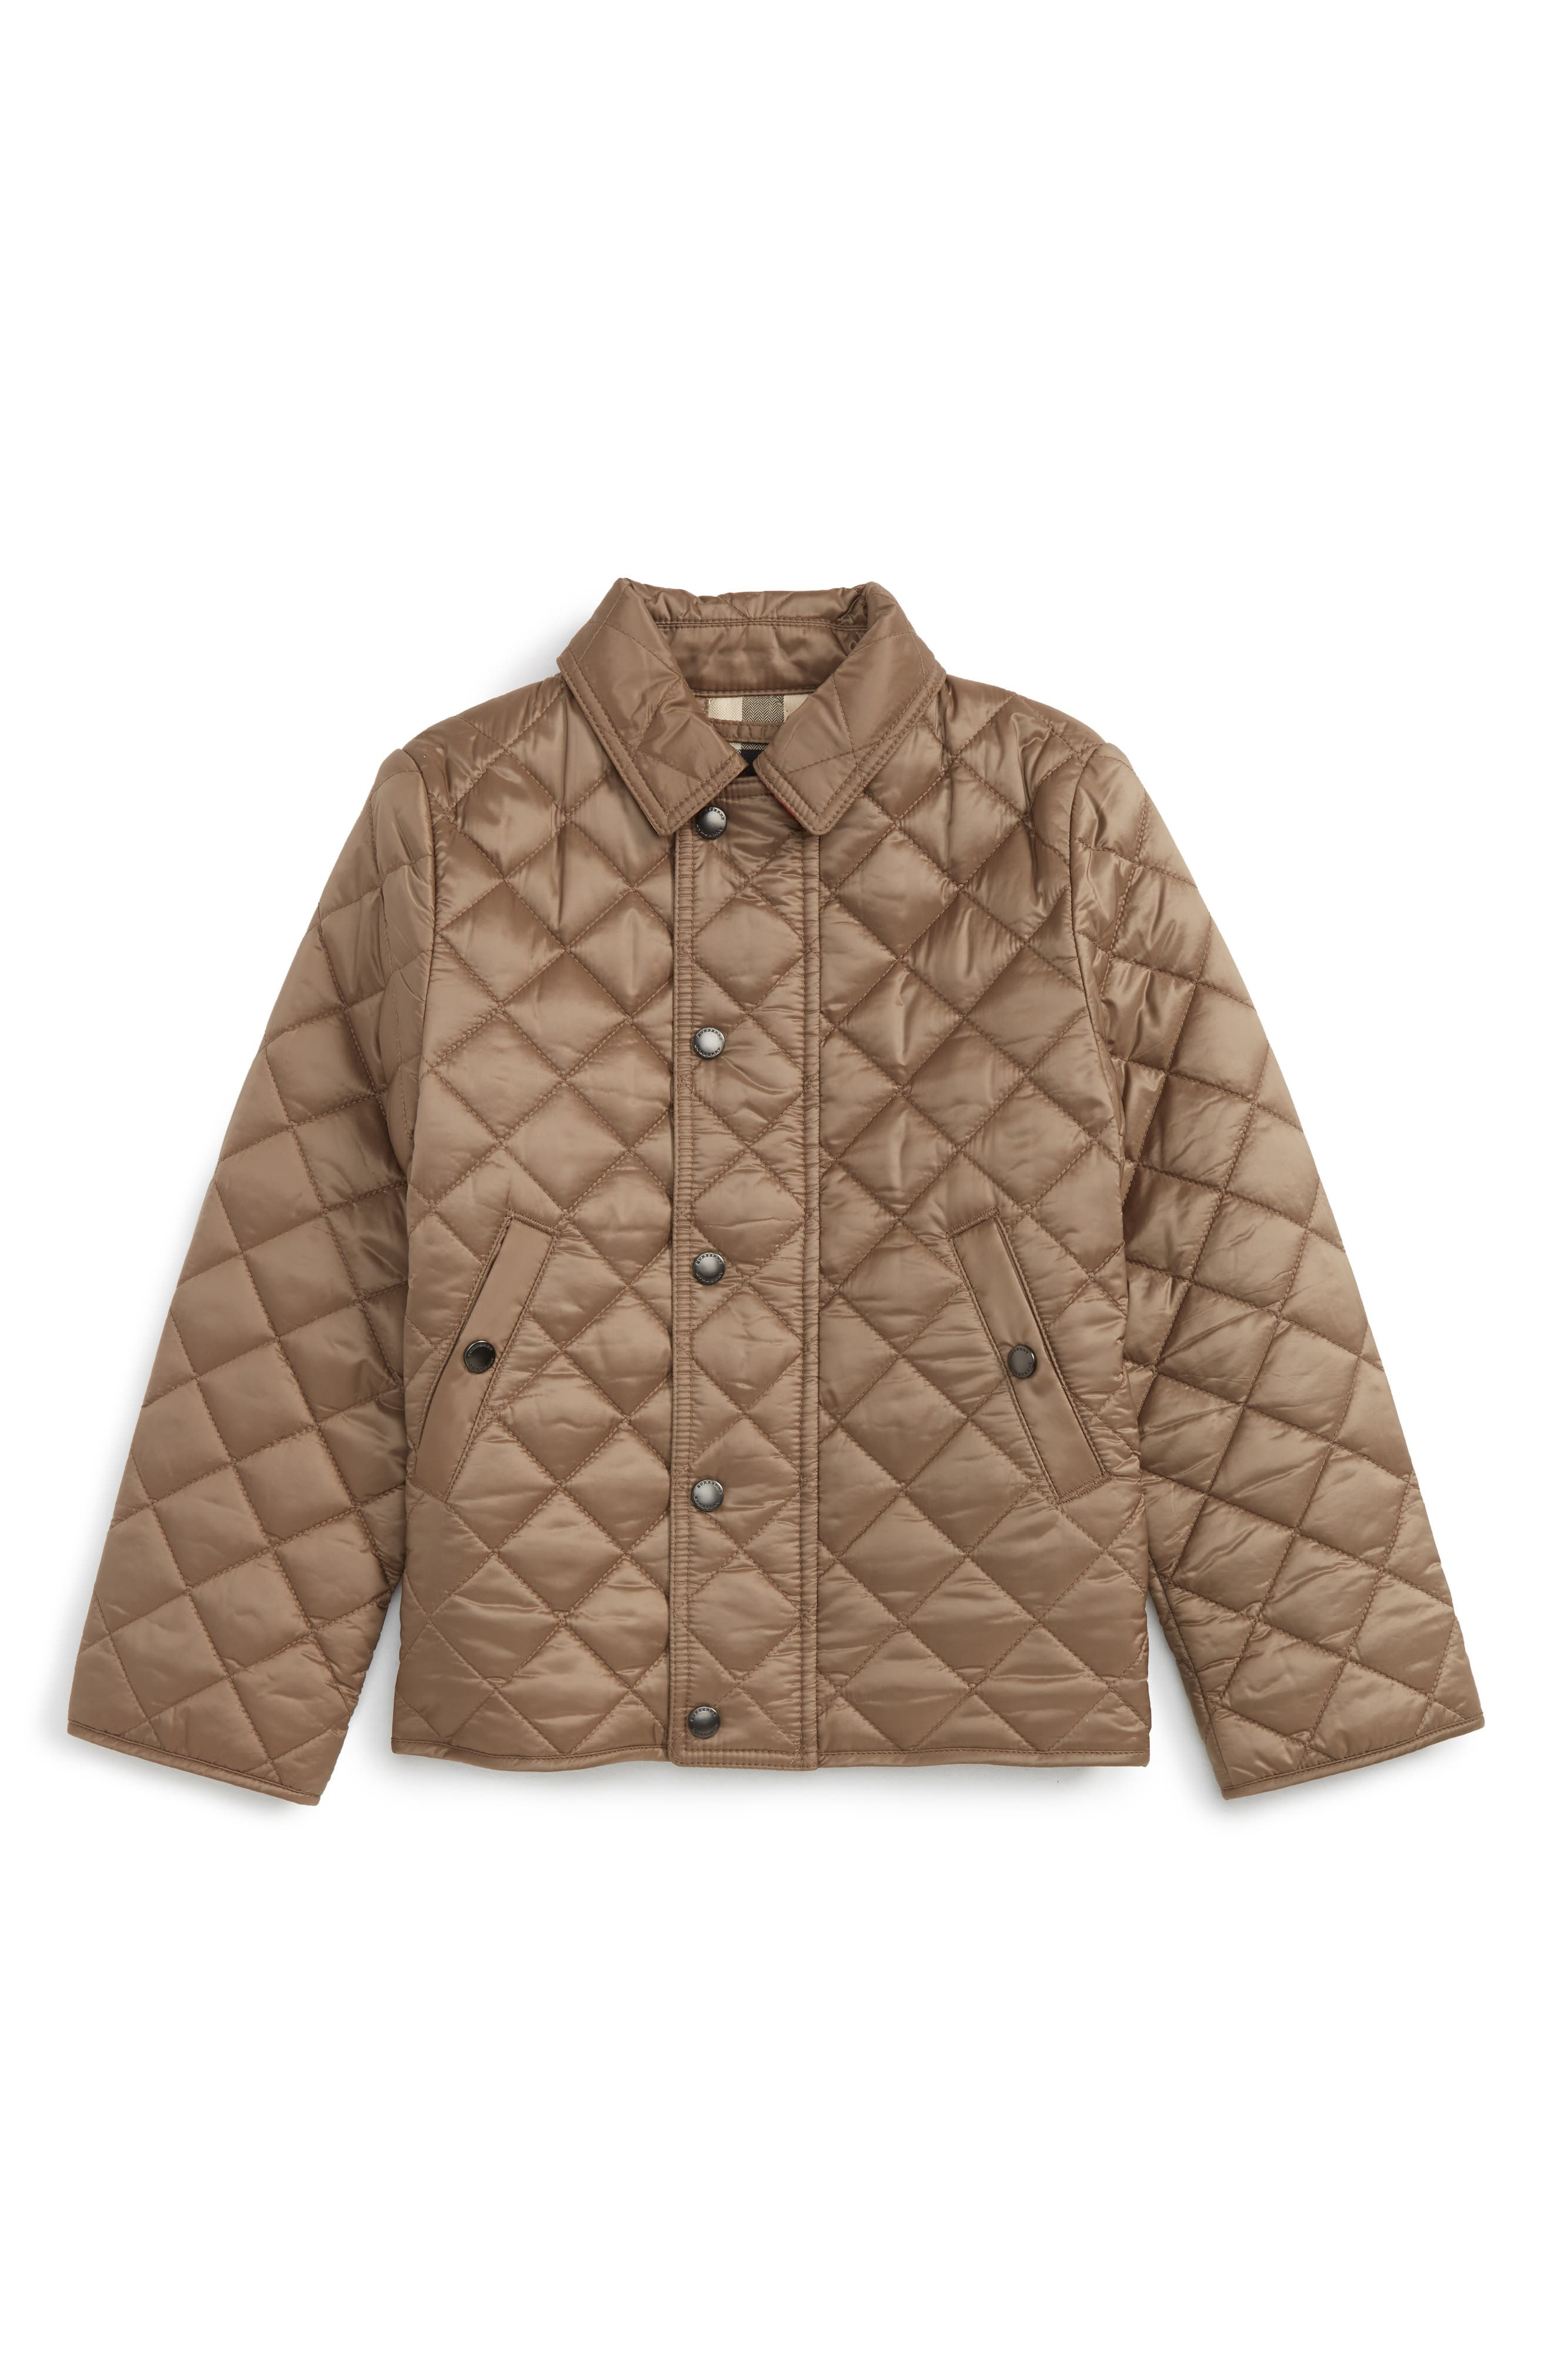 Main Image - Burberry Mini Luke Quilted Jacket (Toddler Boys)